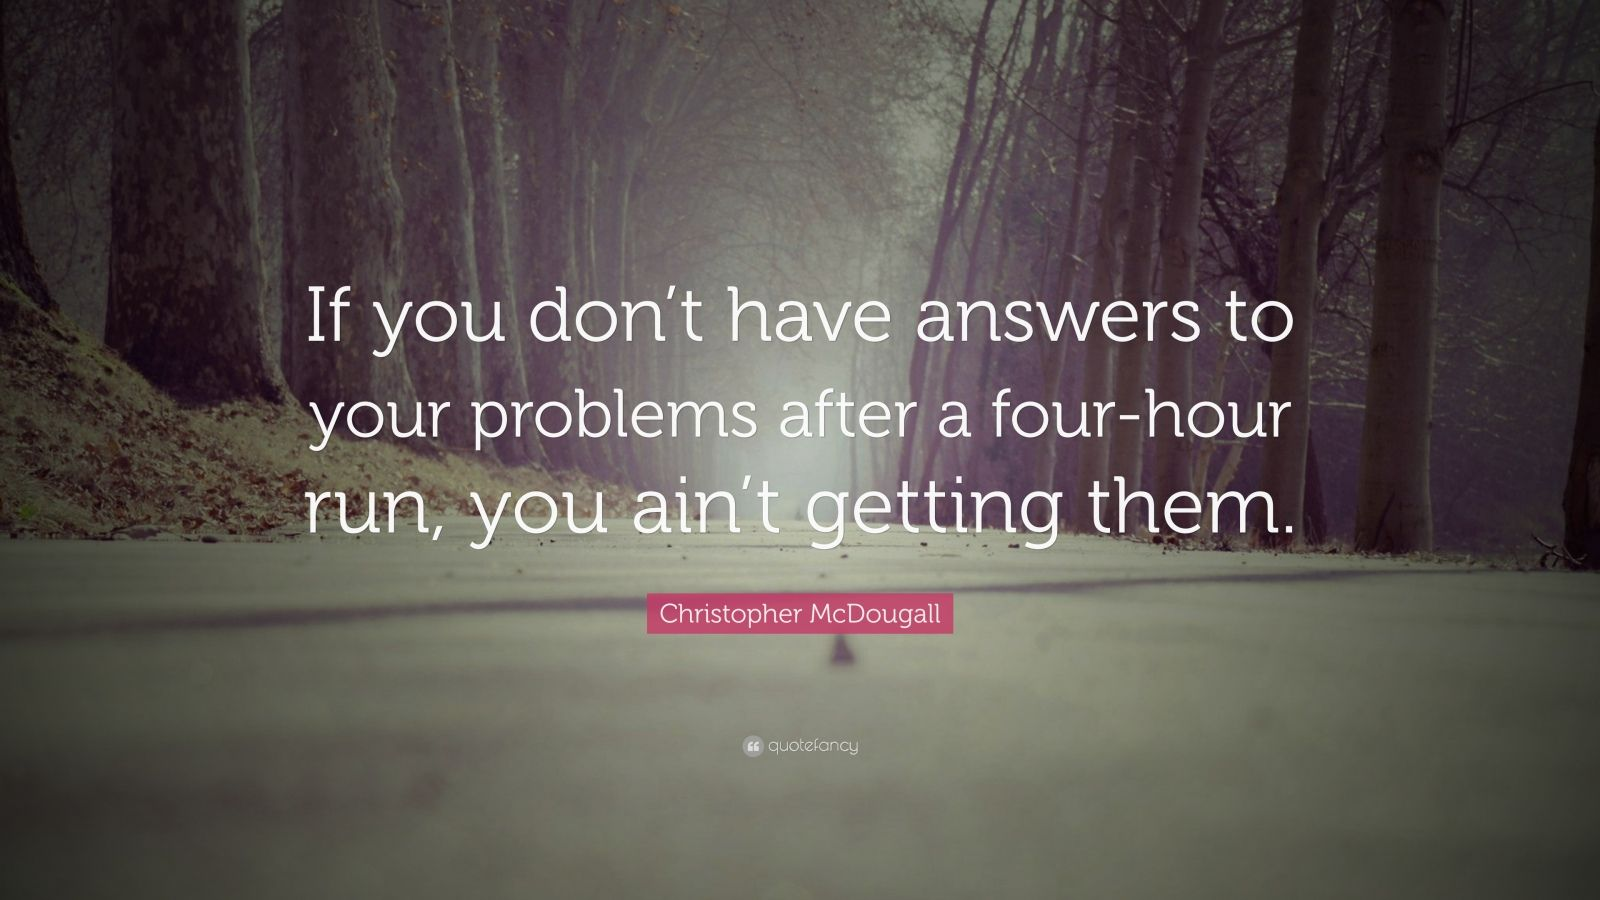 """Christopher McDougall Quote: """"If you don't have answers to your problems after a four-hour run, you ain't getting them."""""""